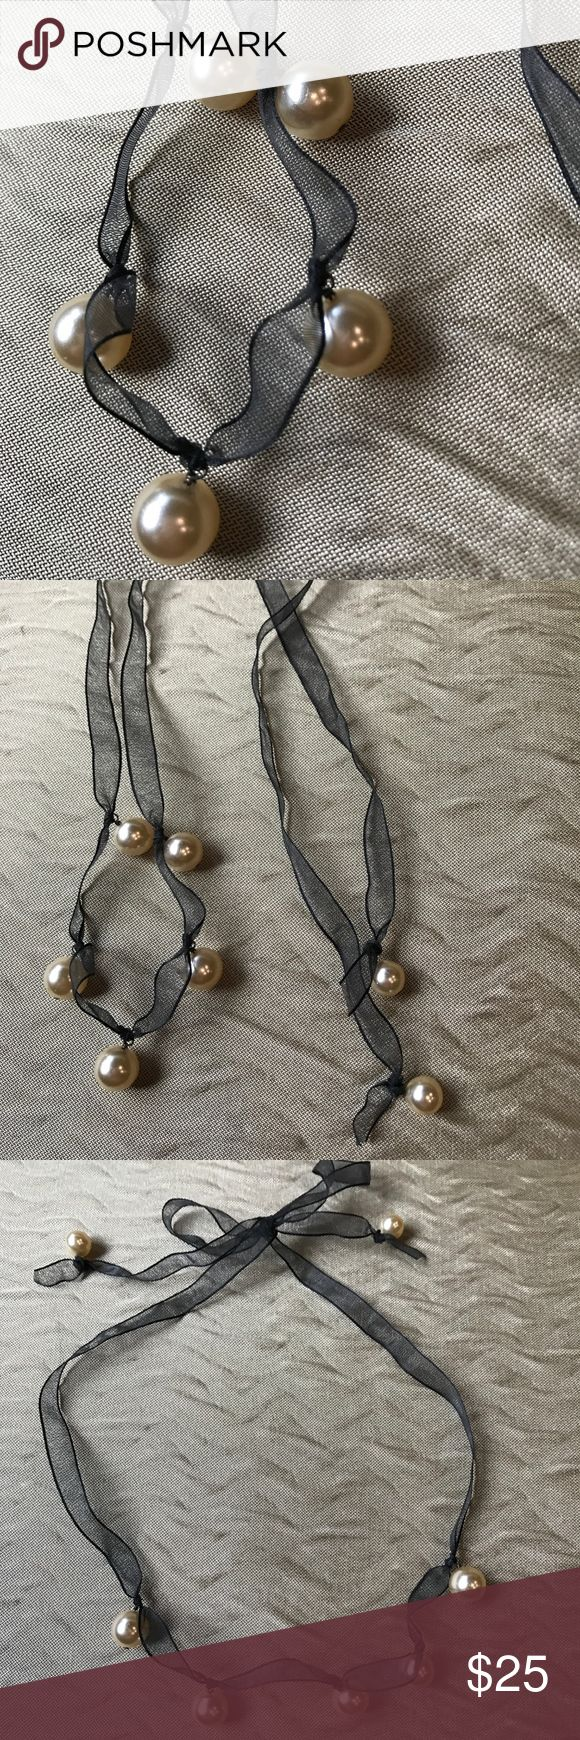 J Crew pearl necklace J Crew pearl necklace on a black sheer ribbon.  Very beautiful necklace, in excellent condition.  Only worn a few times J crew Jewelry Necklaces